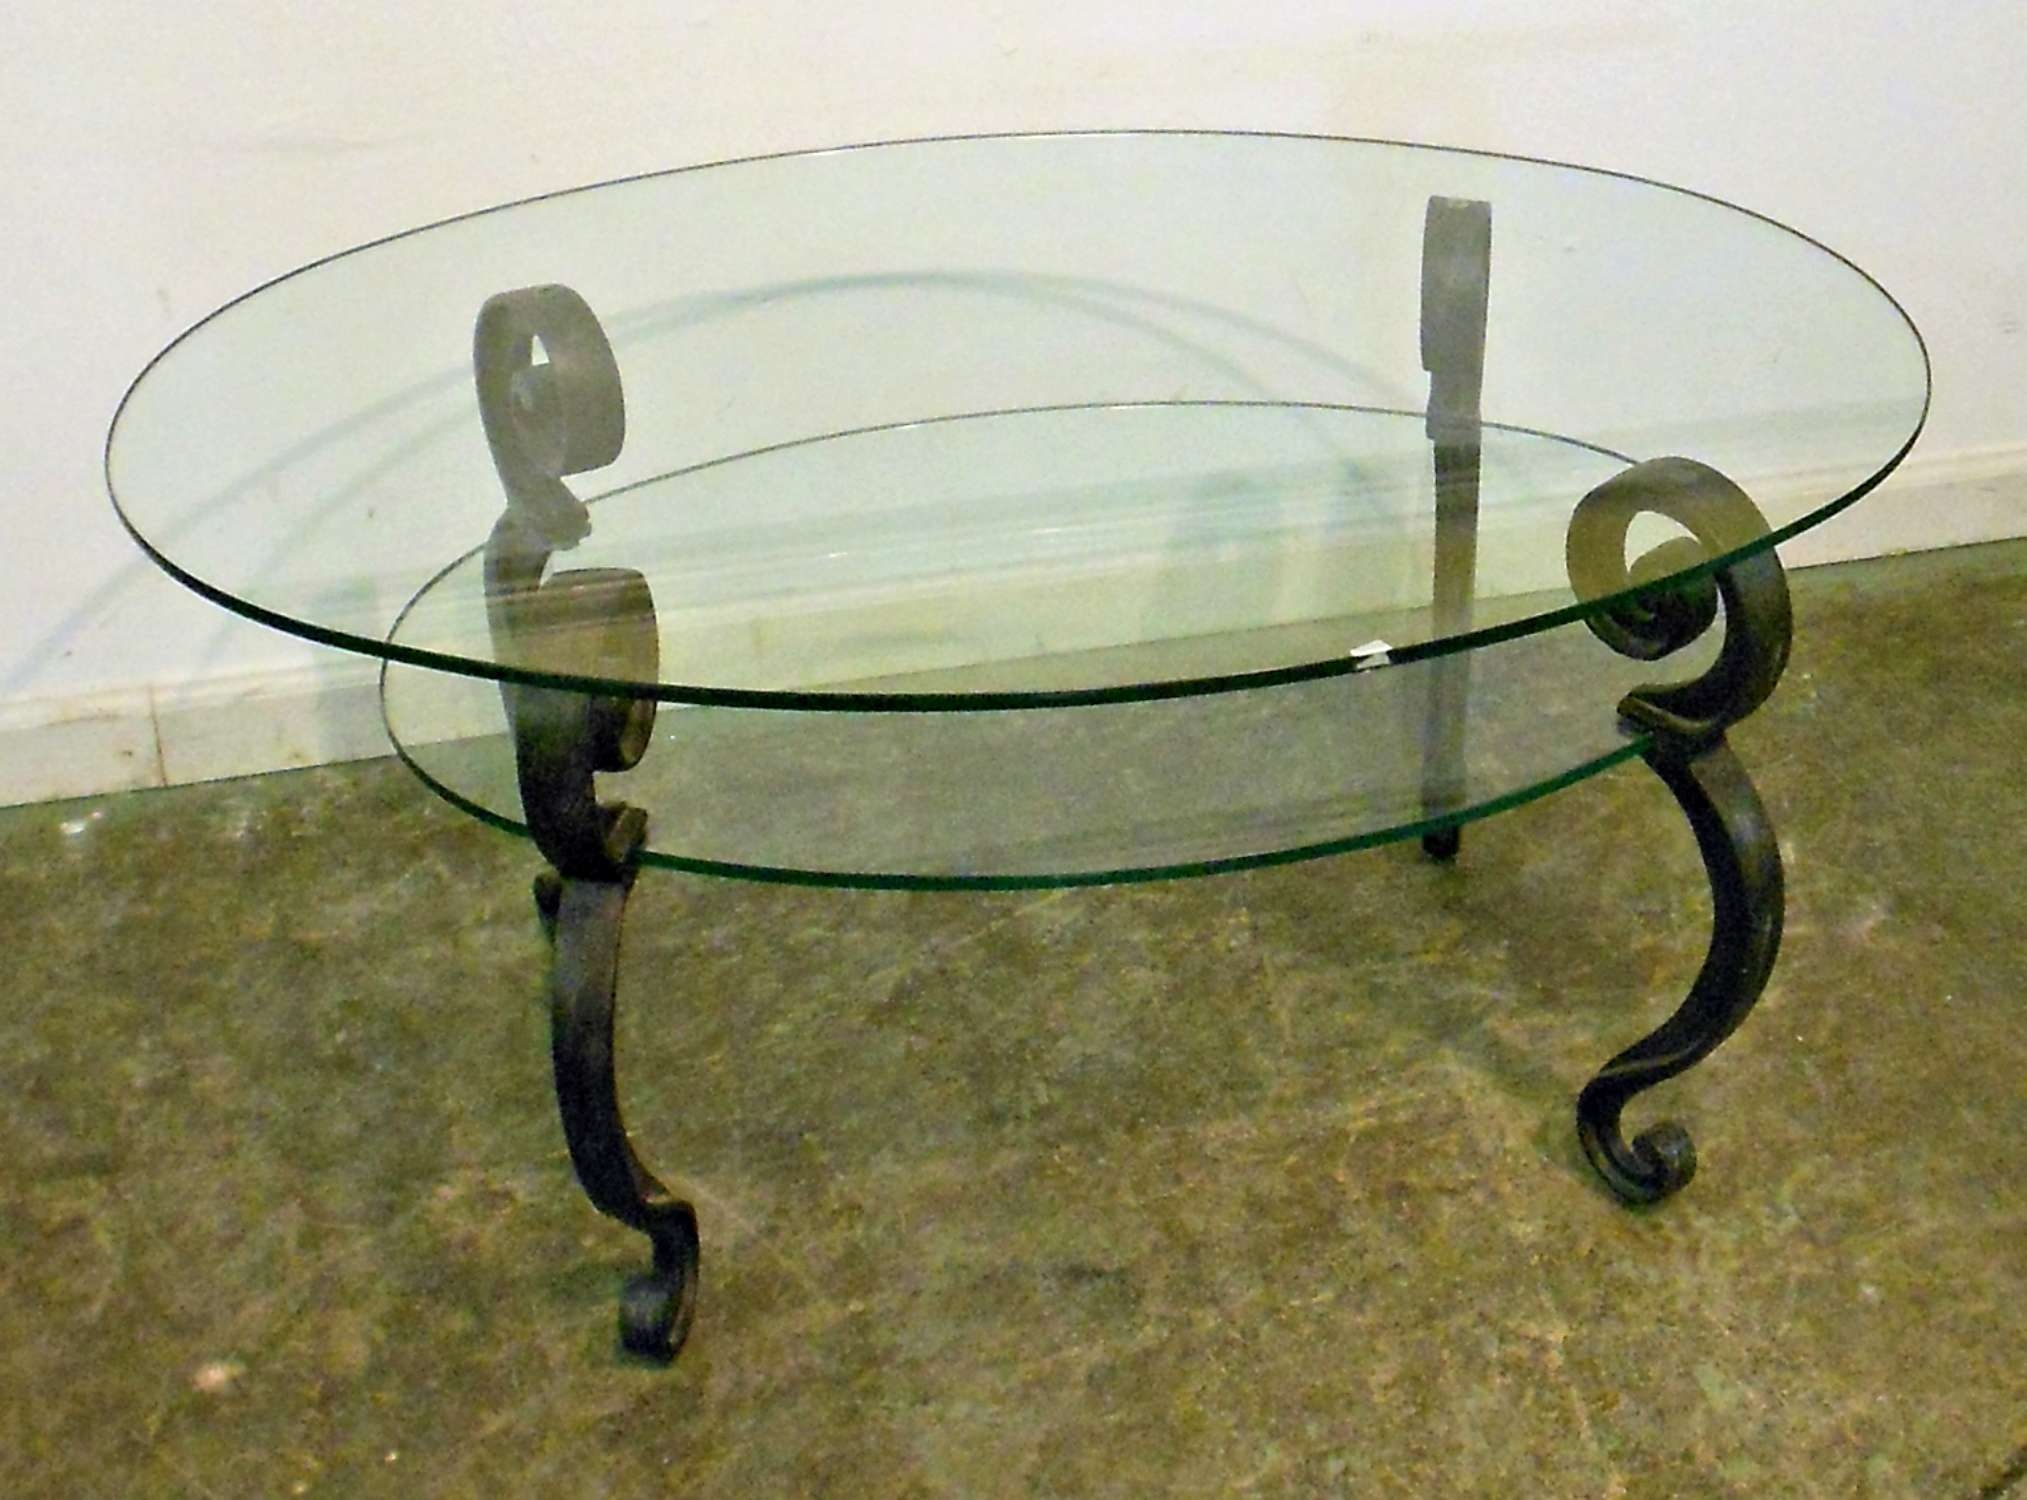 Vintage Glass Top Coffee Table With Black Metal Legs And Shelves Regarding Most Current Antique Glass Coffee Tables (View 18 of 20)